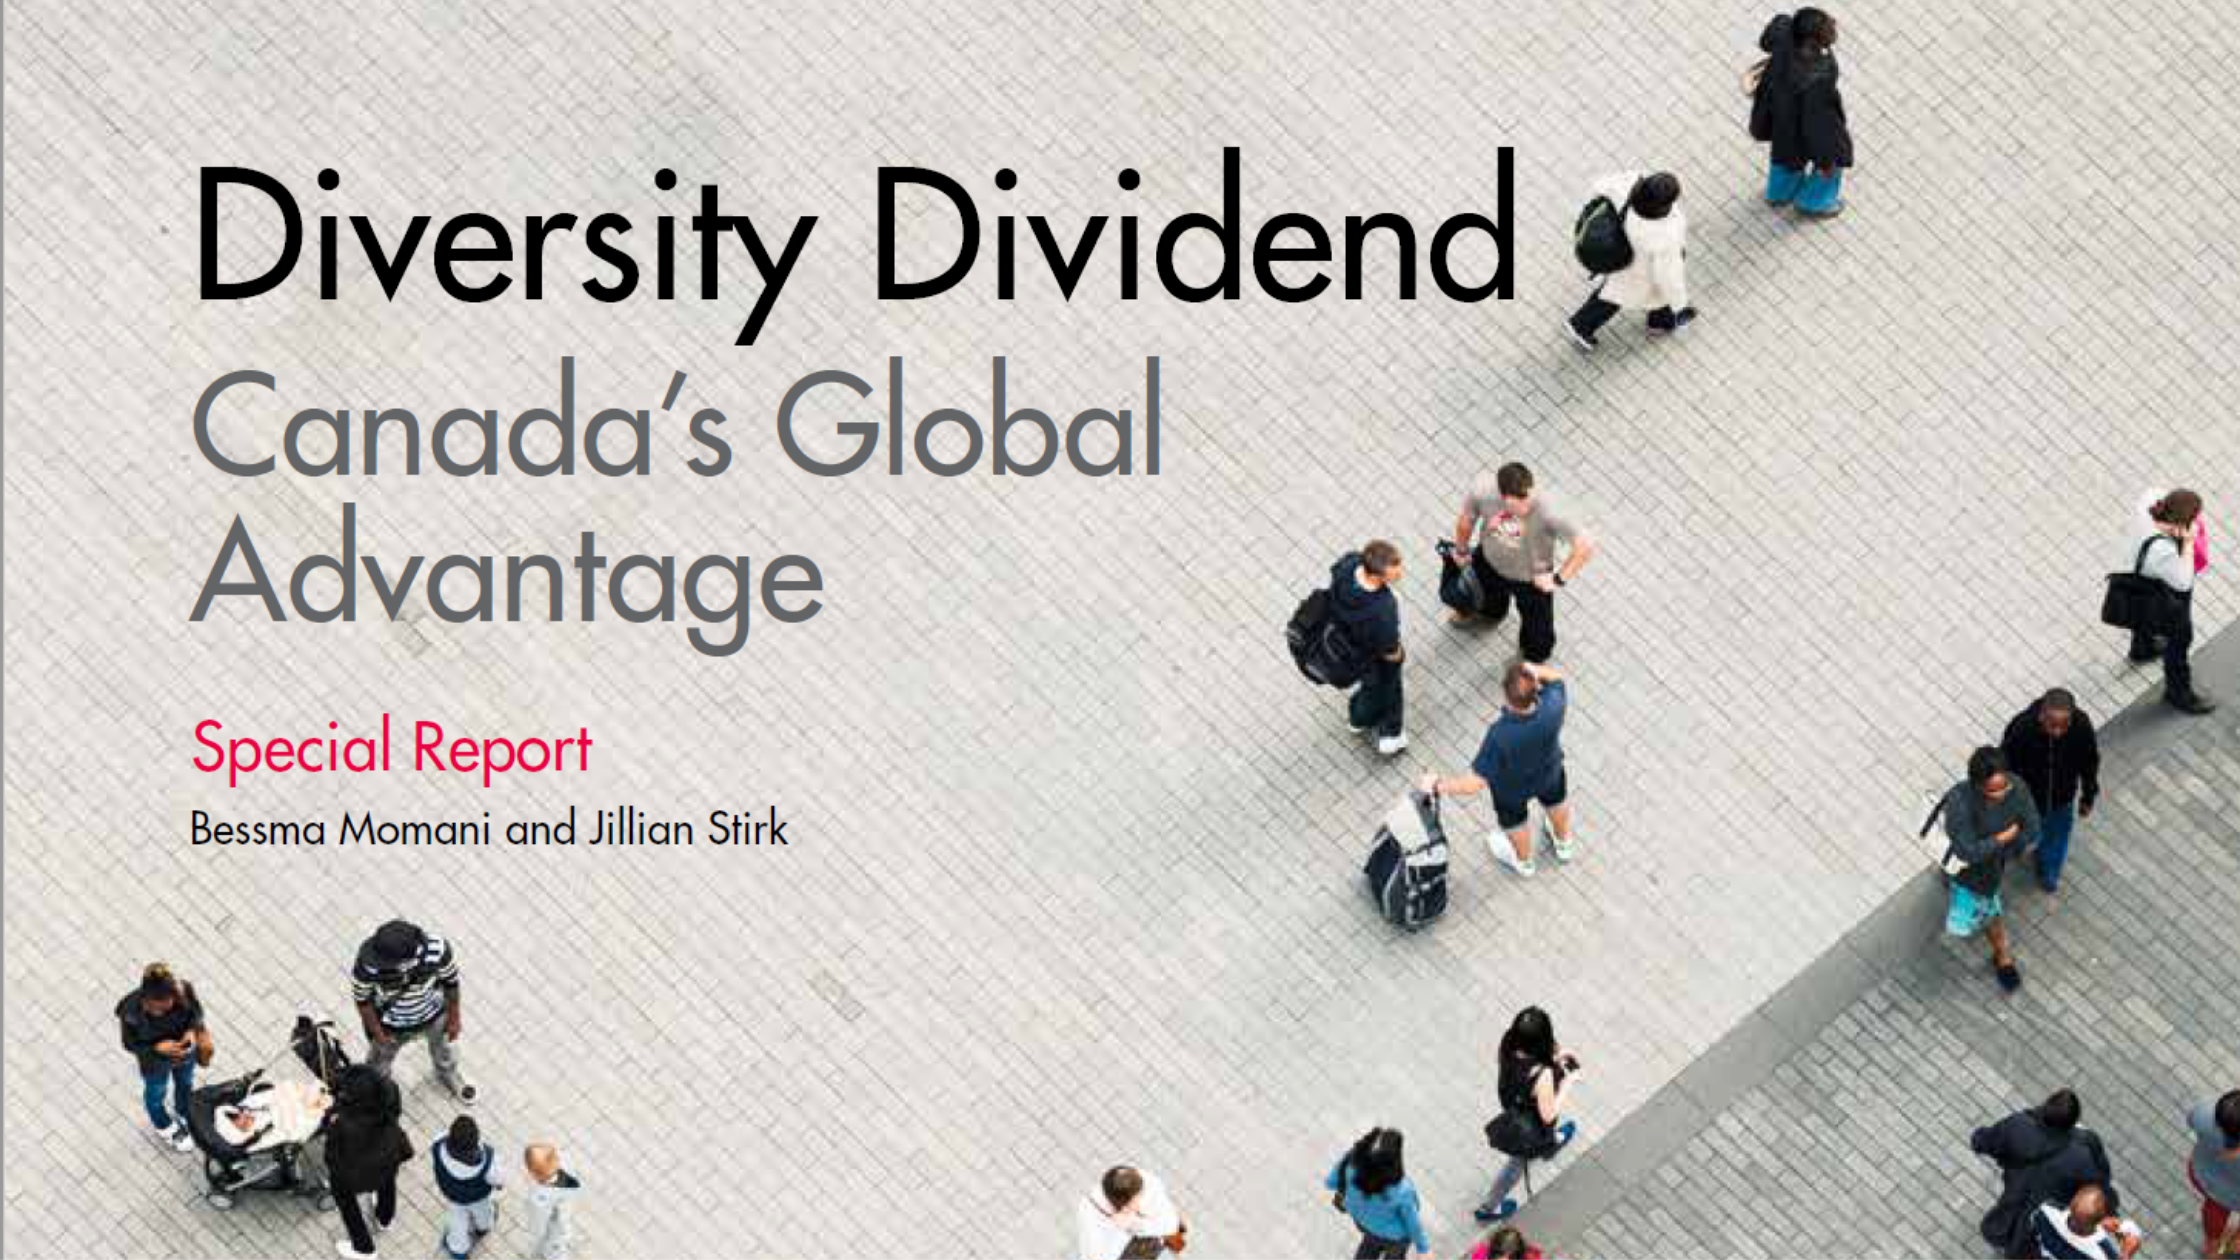 Diversity Dividend: Canada's Global Advantage